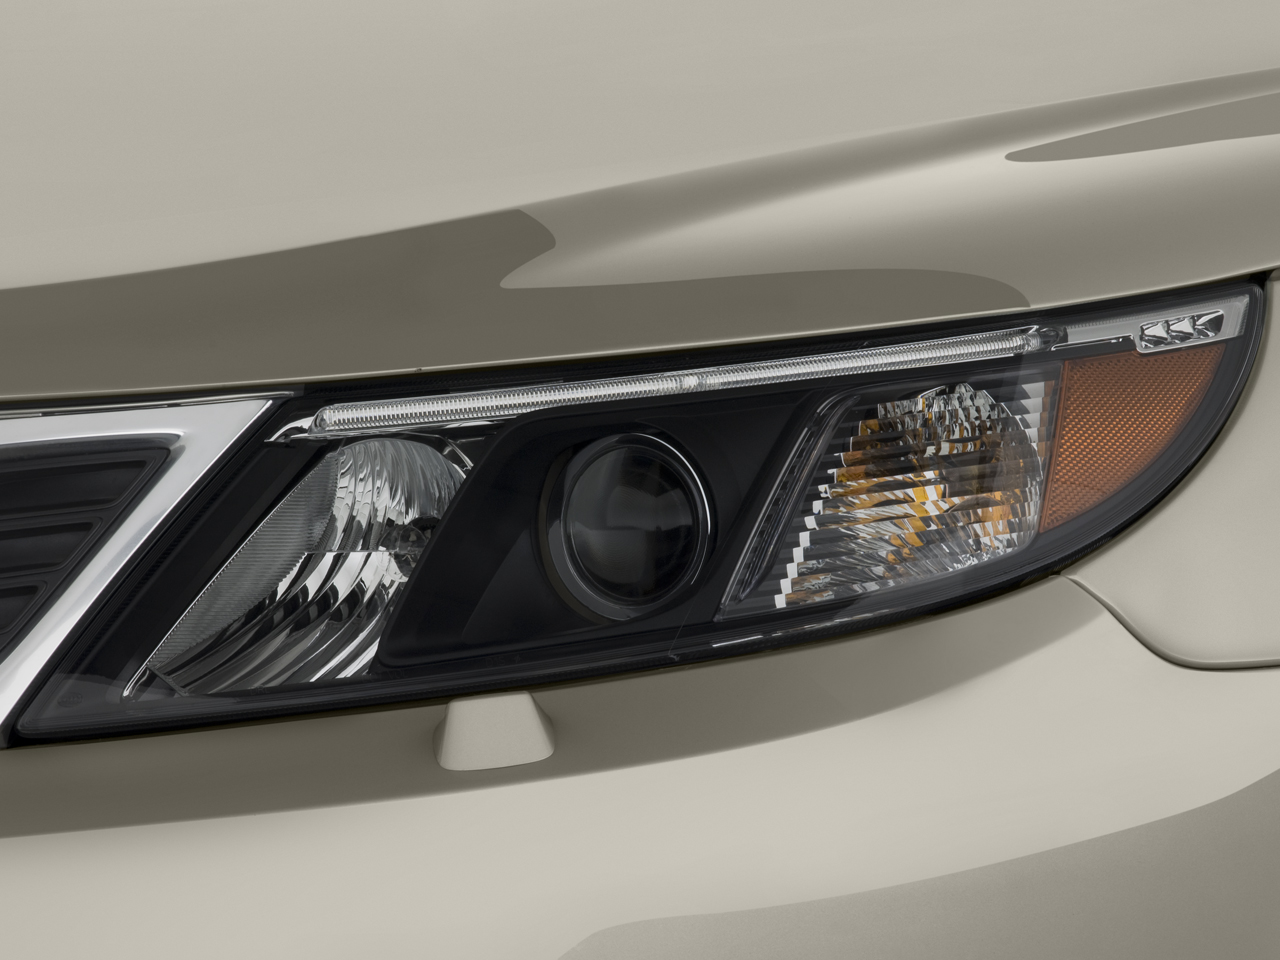 2008 Saab 9 3 Xwd Latest News Reviews And Auto Show Coverage Fog Lights Wiring Diagram 18 75